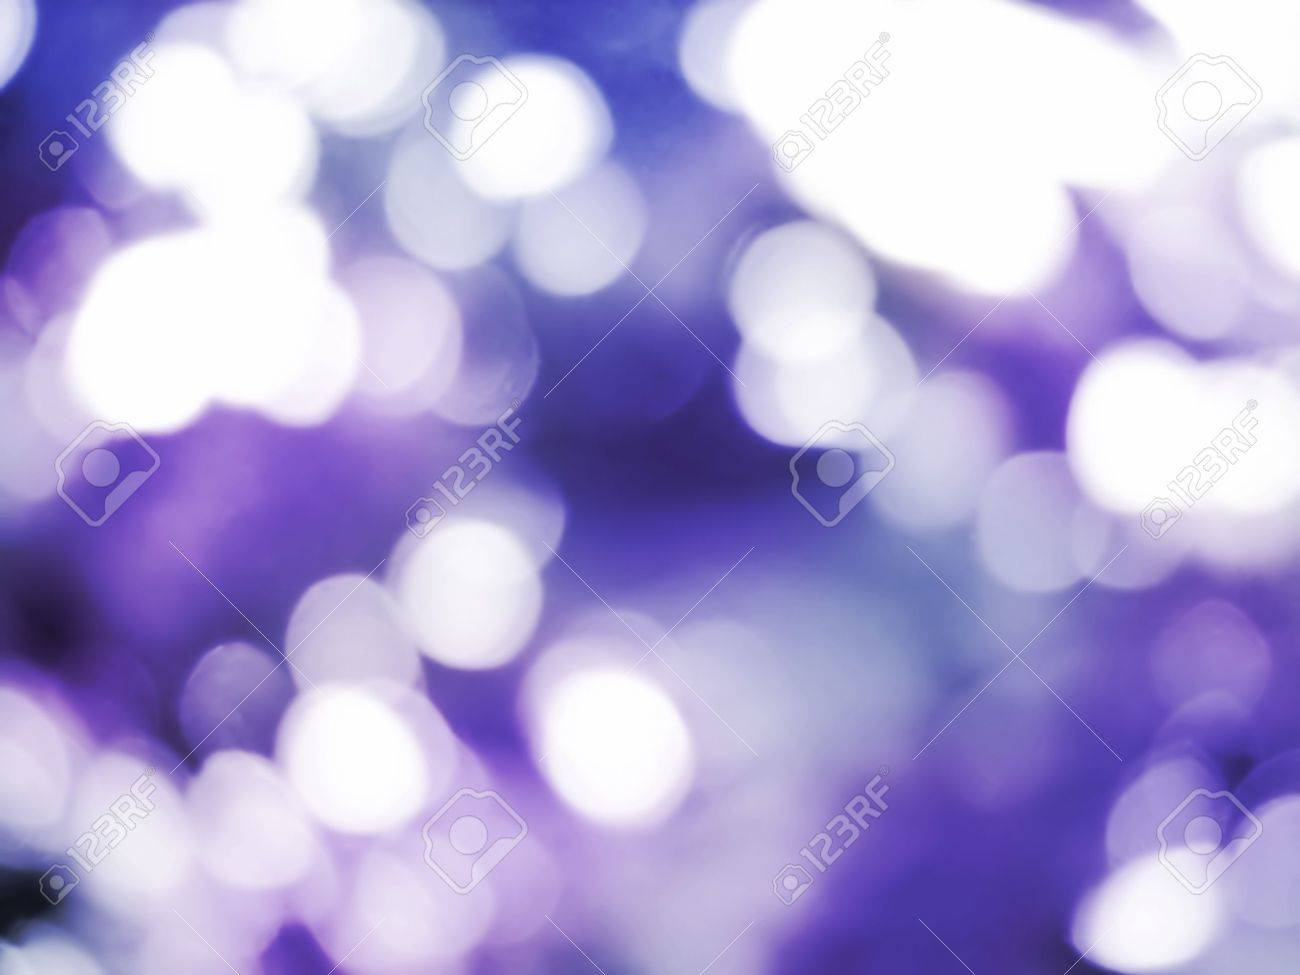 unfocused light background, spotted blurred bright texture Stock Photo - 3499908